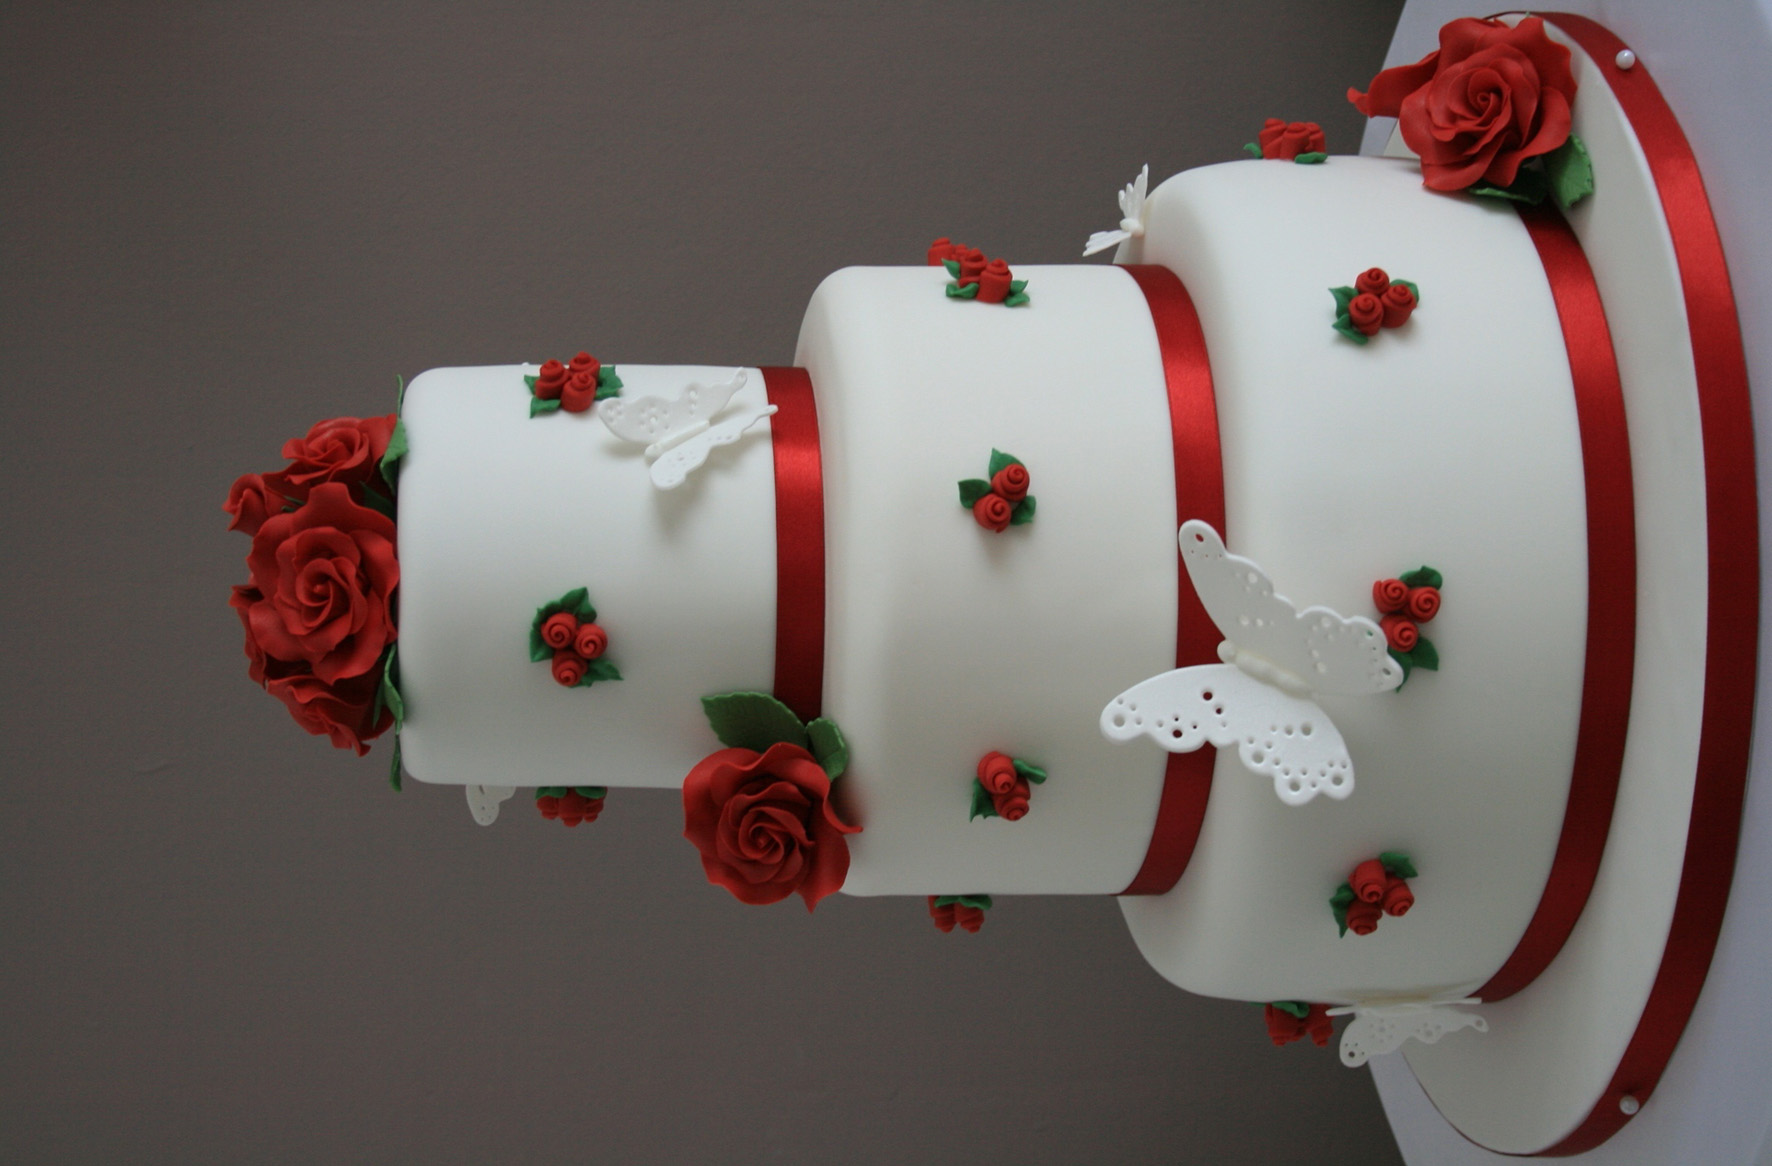 The most beautiful wedding cakes Part II – Bo mariage